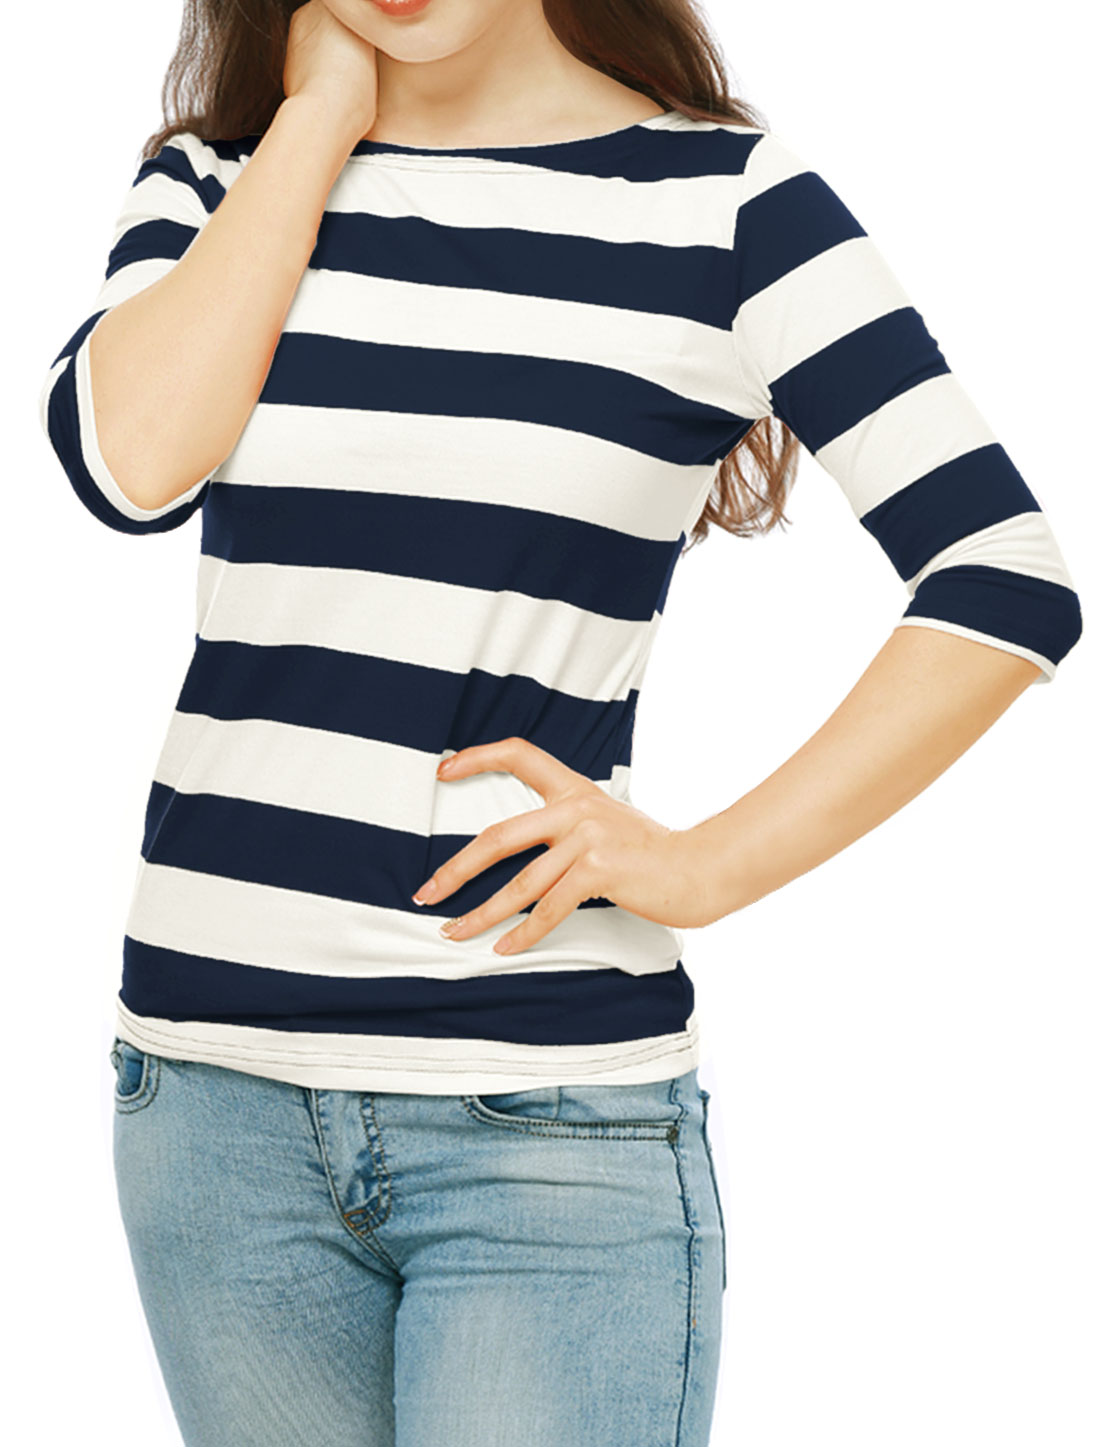 Women Elbow Sleeves Rugby Stripes Casual Tee Blue XL